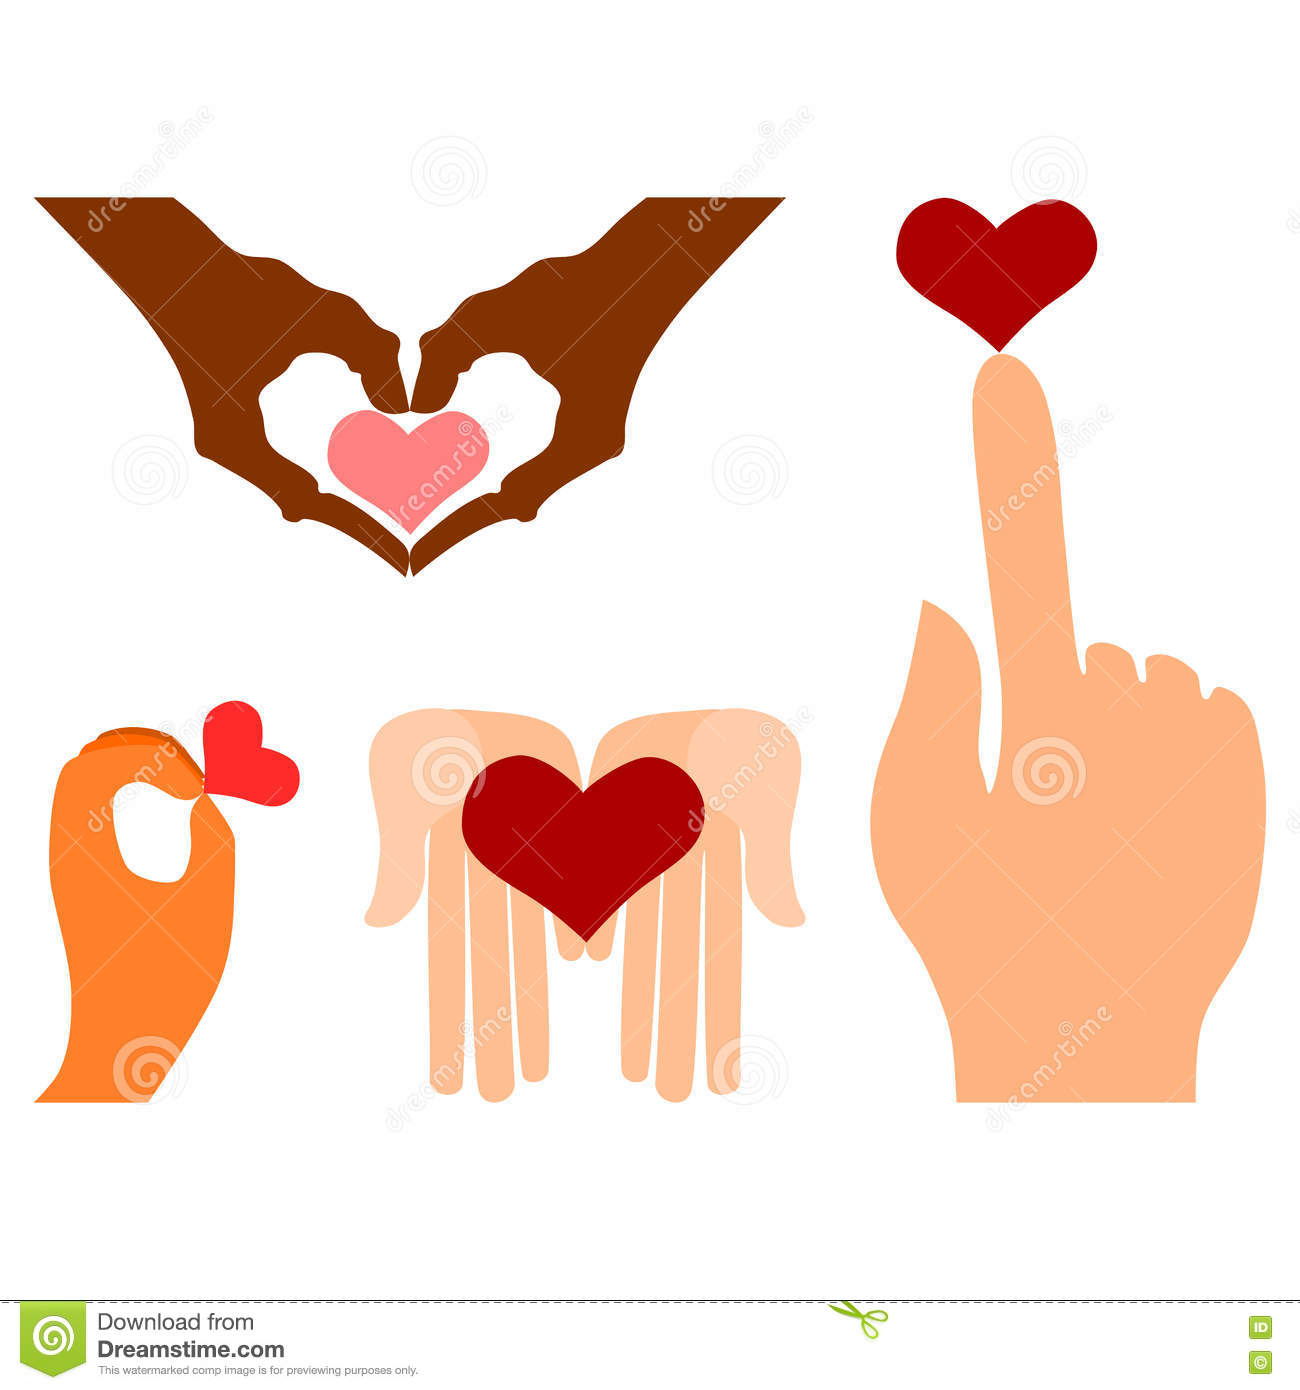 Hands With Heart Symbols Stock Vector Illustration Of Graphic